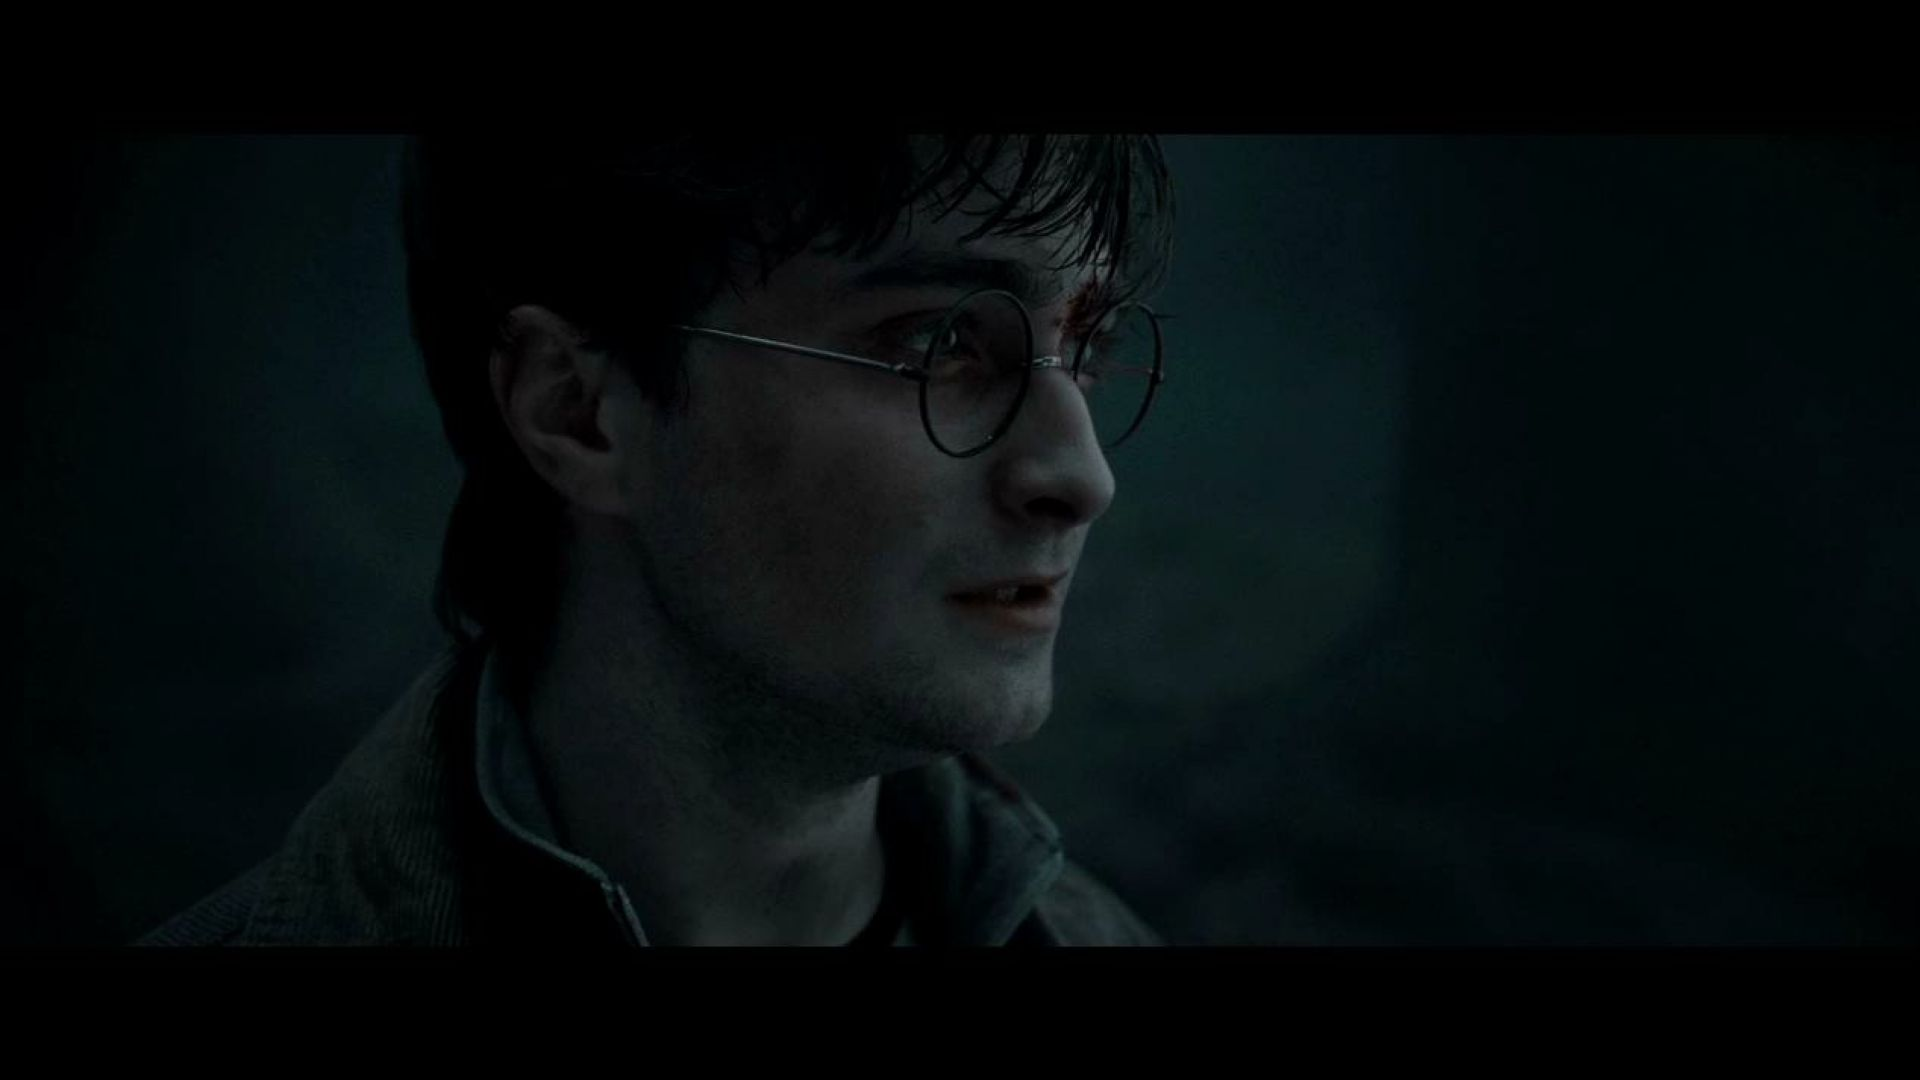 I thought he would come. Harry Potter 7 Part 2